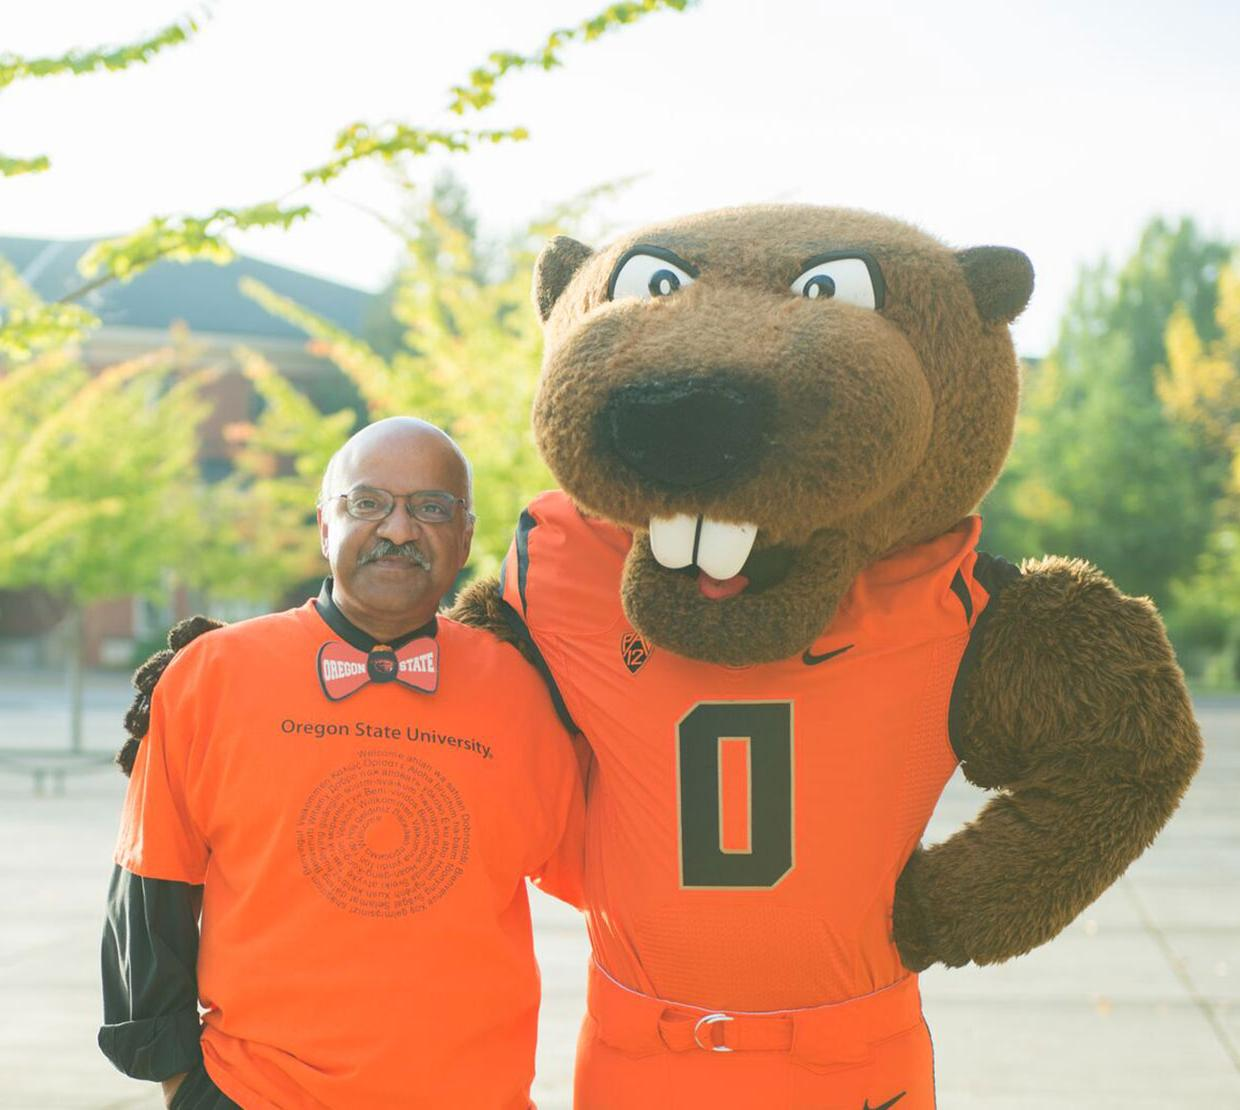 Dean Pantula with Benny the Beaver outide Reser